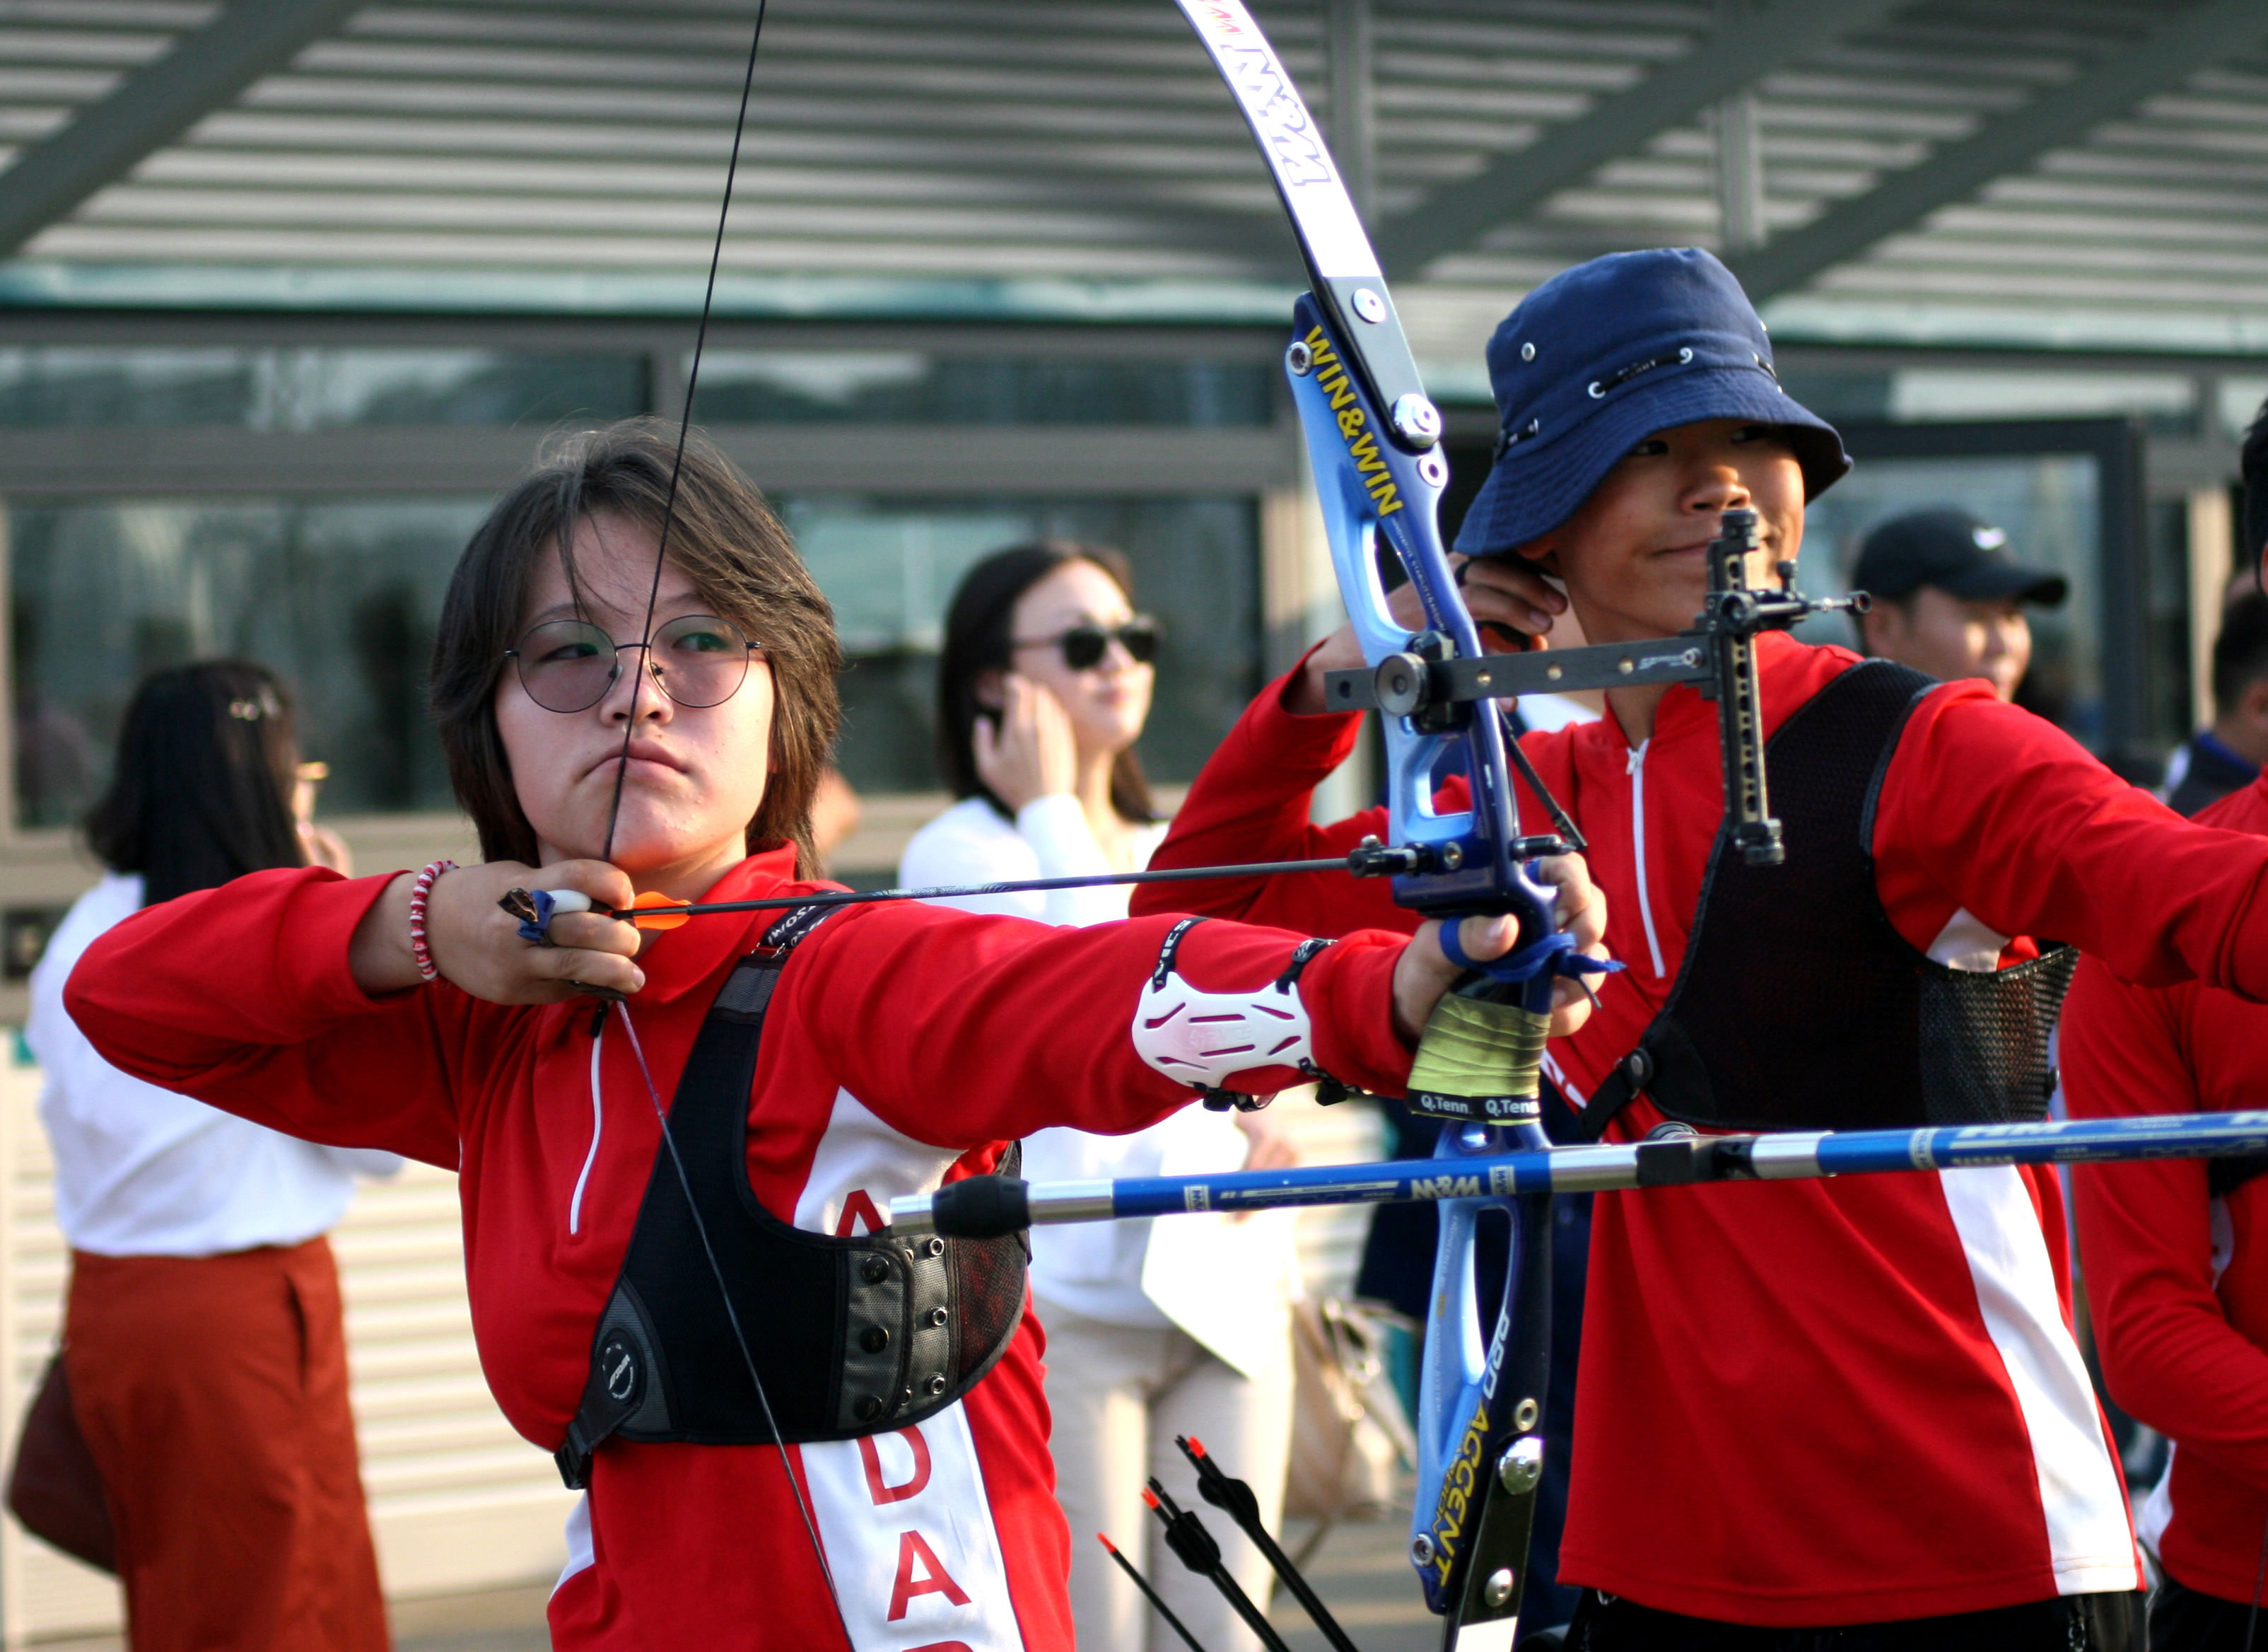 Target archery range opens with crowdfunding